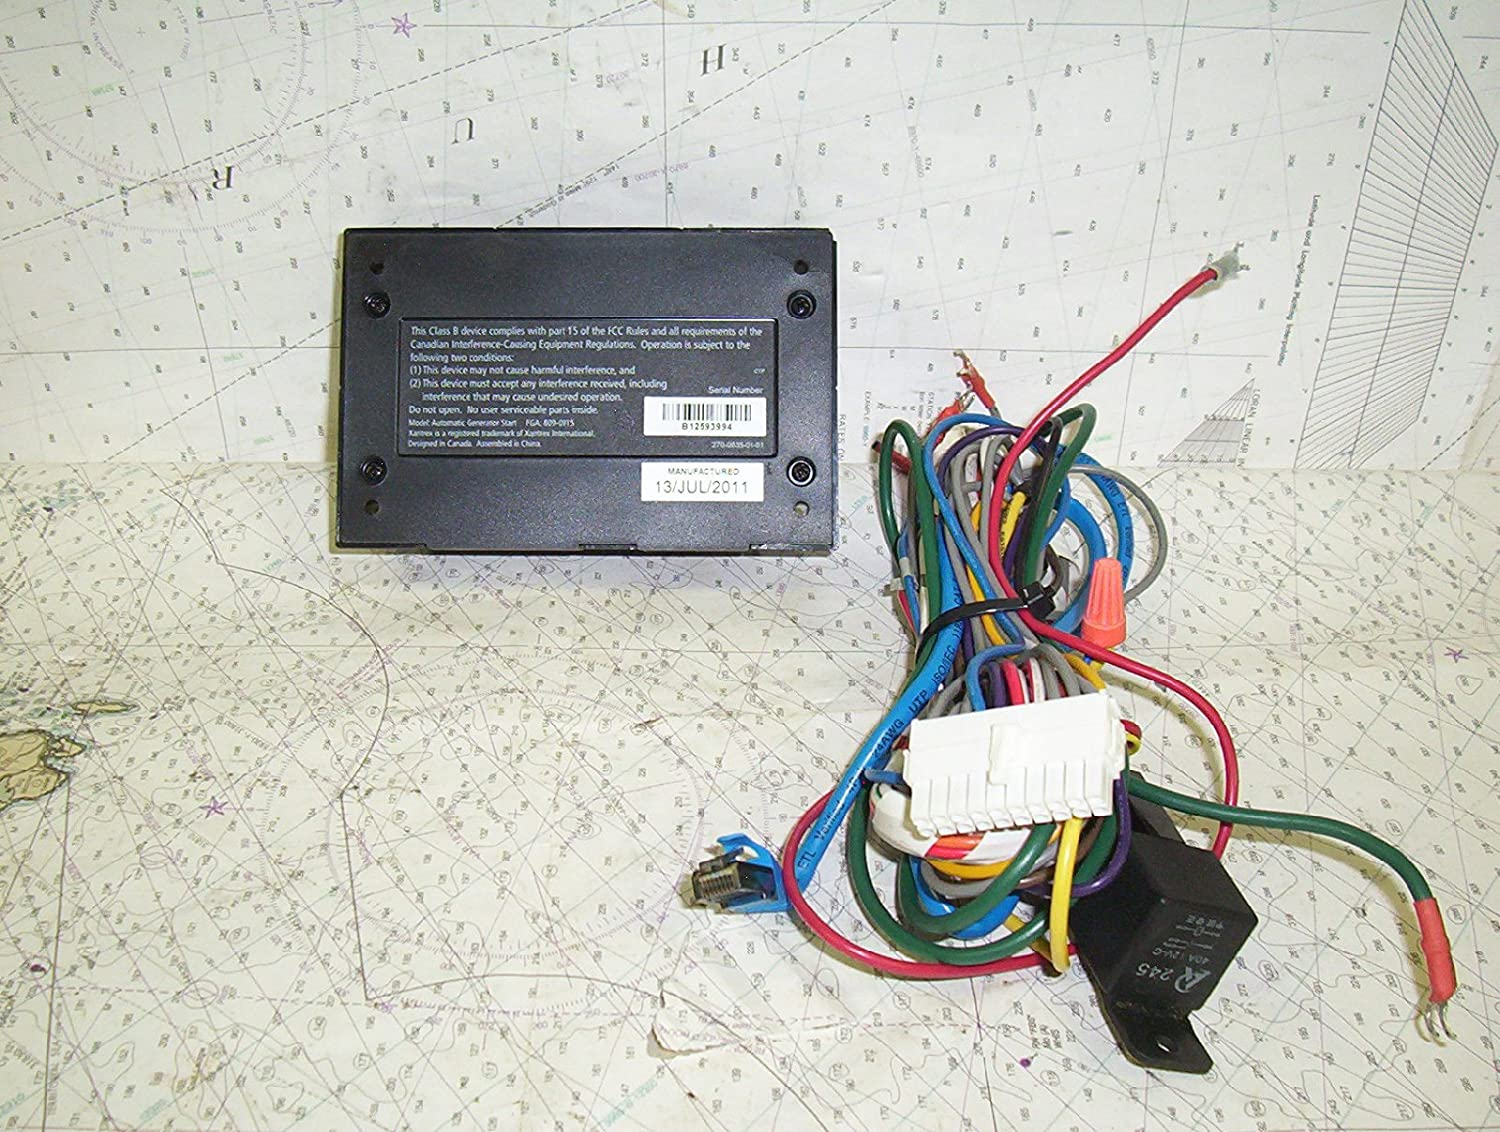 81v3m4xGqIL._SL1500_ amazon com xantrex 809 0915 freedom sw xanbus automatic Wire Harness Assembly at n-0.co